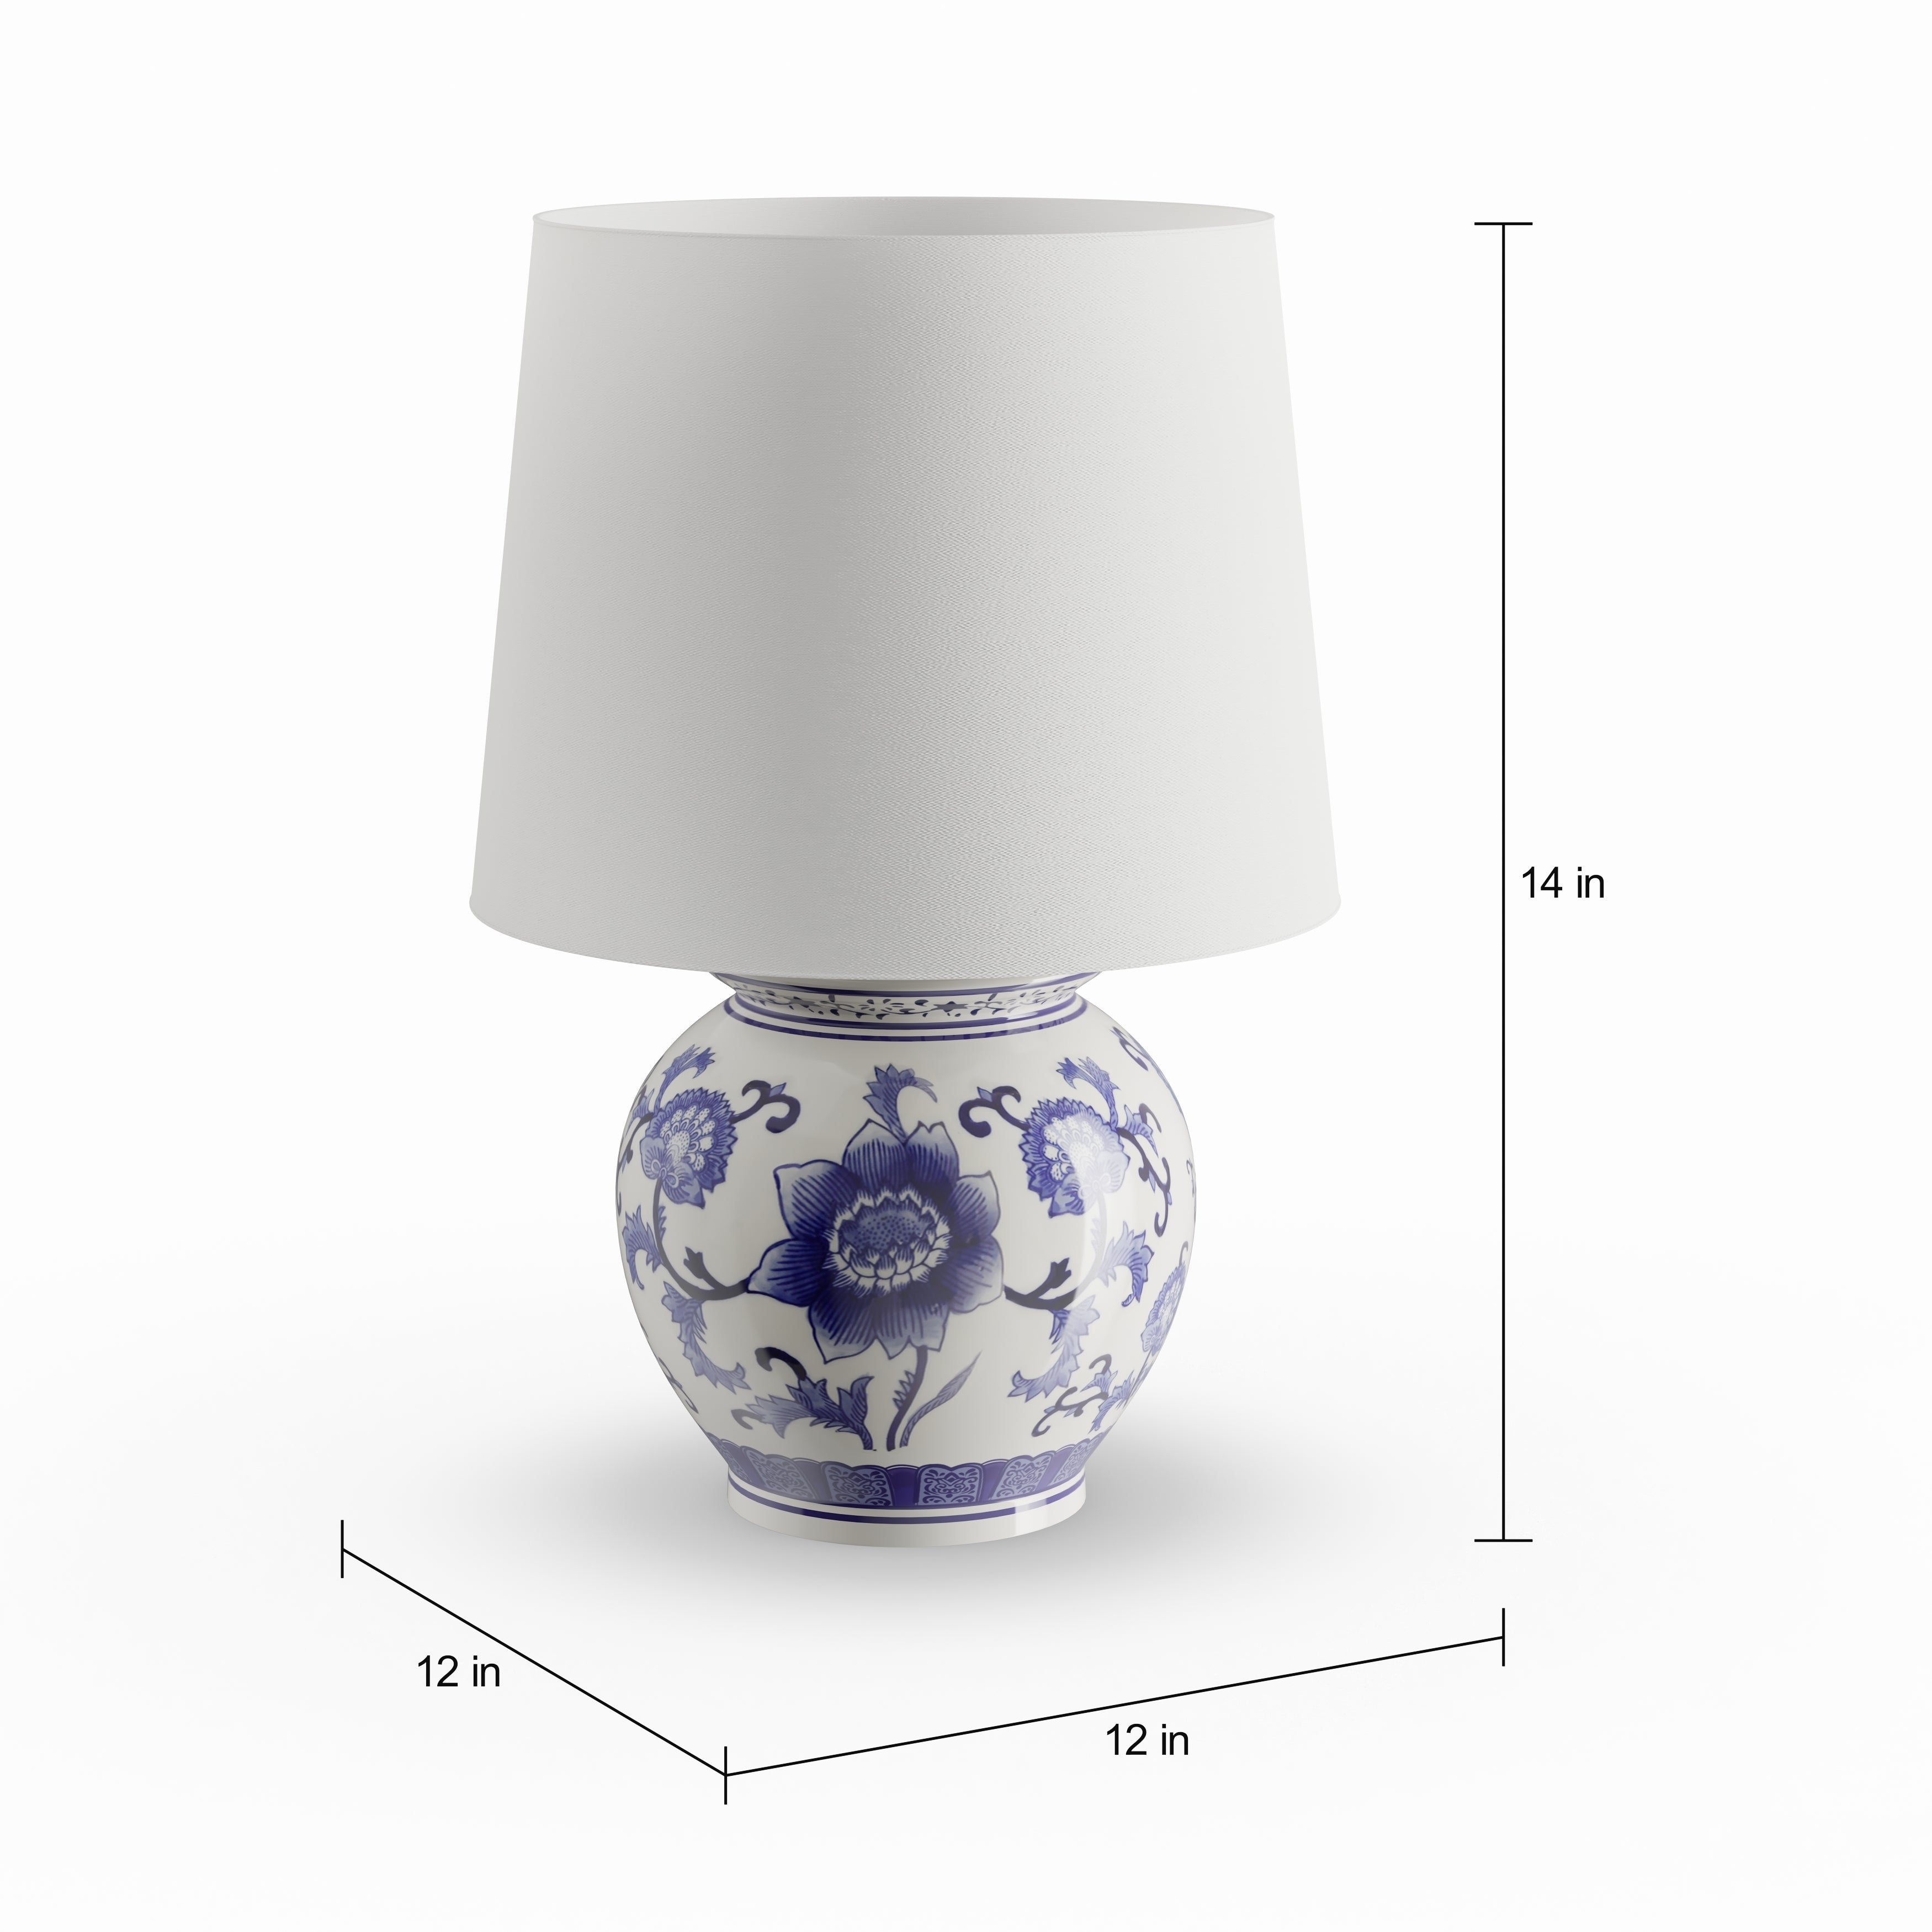 Shop Copper Grove Brightsand Blue White Ceramic Table Lamp On